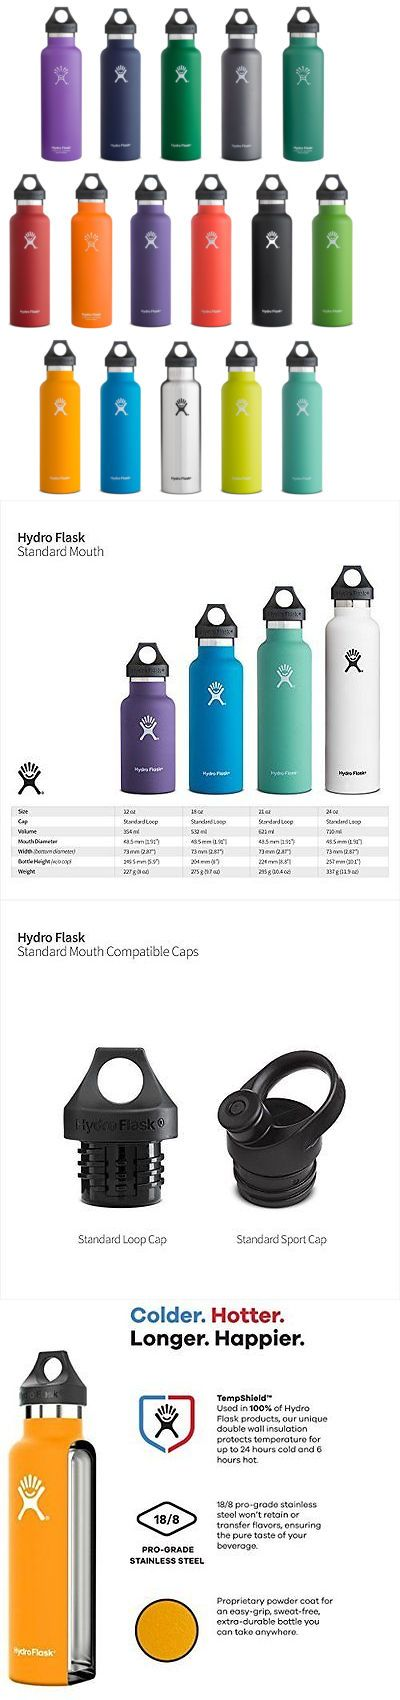 Canteens bottles and flasks 181408 hydro flask stainless steel bottle standard mouth w